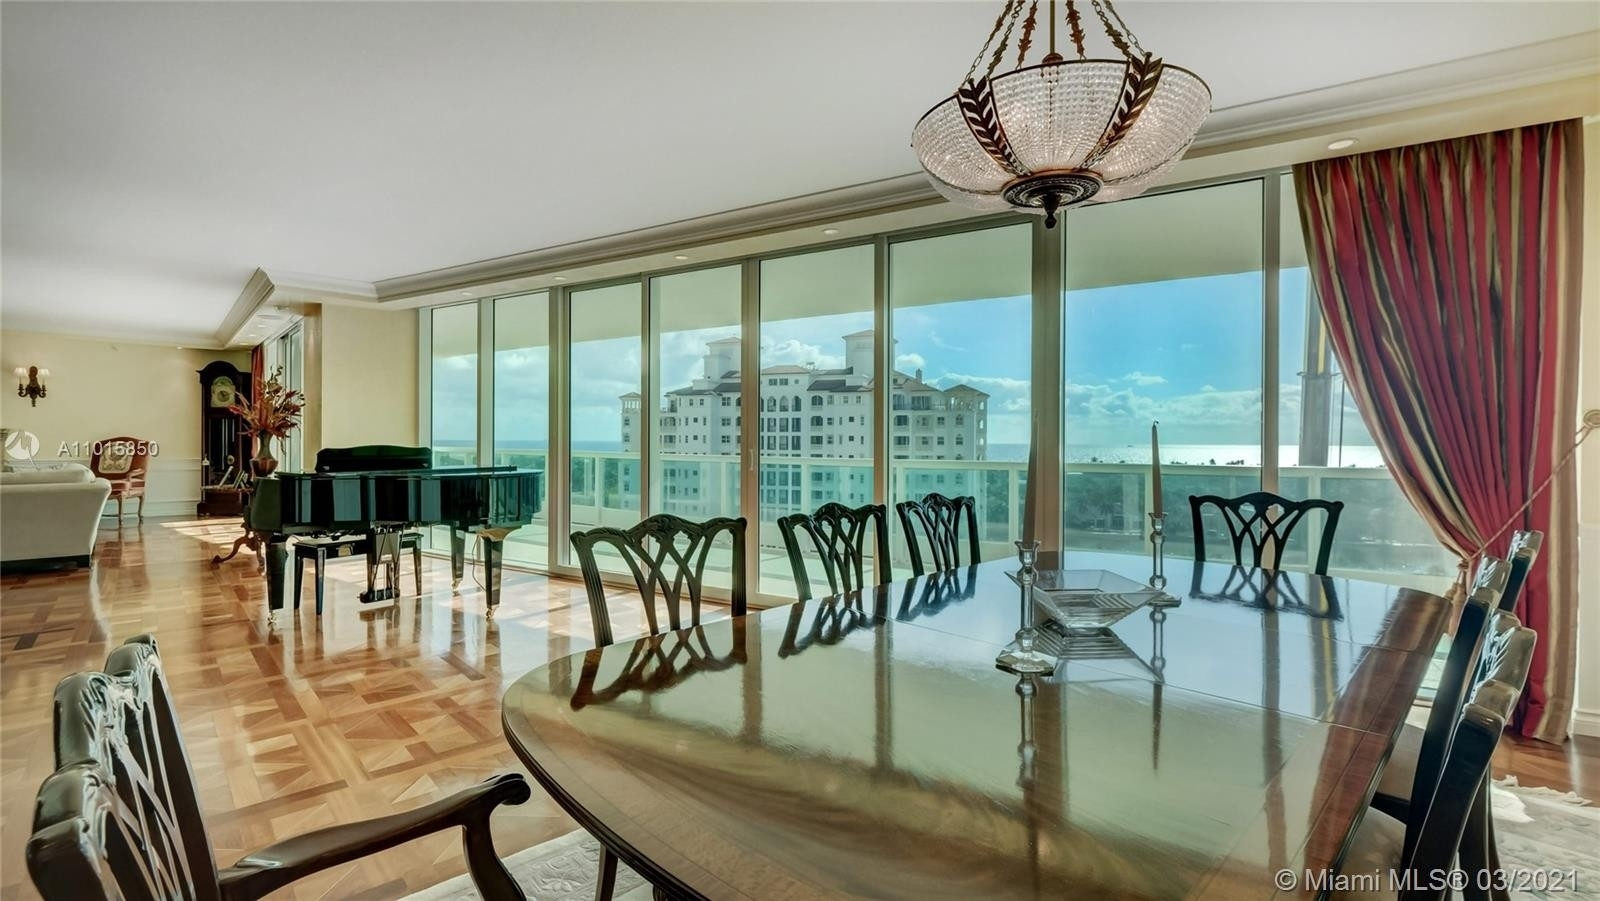 Condominium pour l Vente à 20155 NE 38th Ct , 1401 Biscayne Yacht and Country Club, Aventura, FL 33180